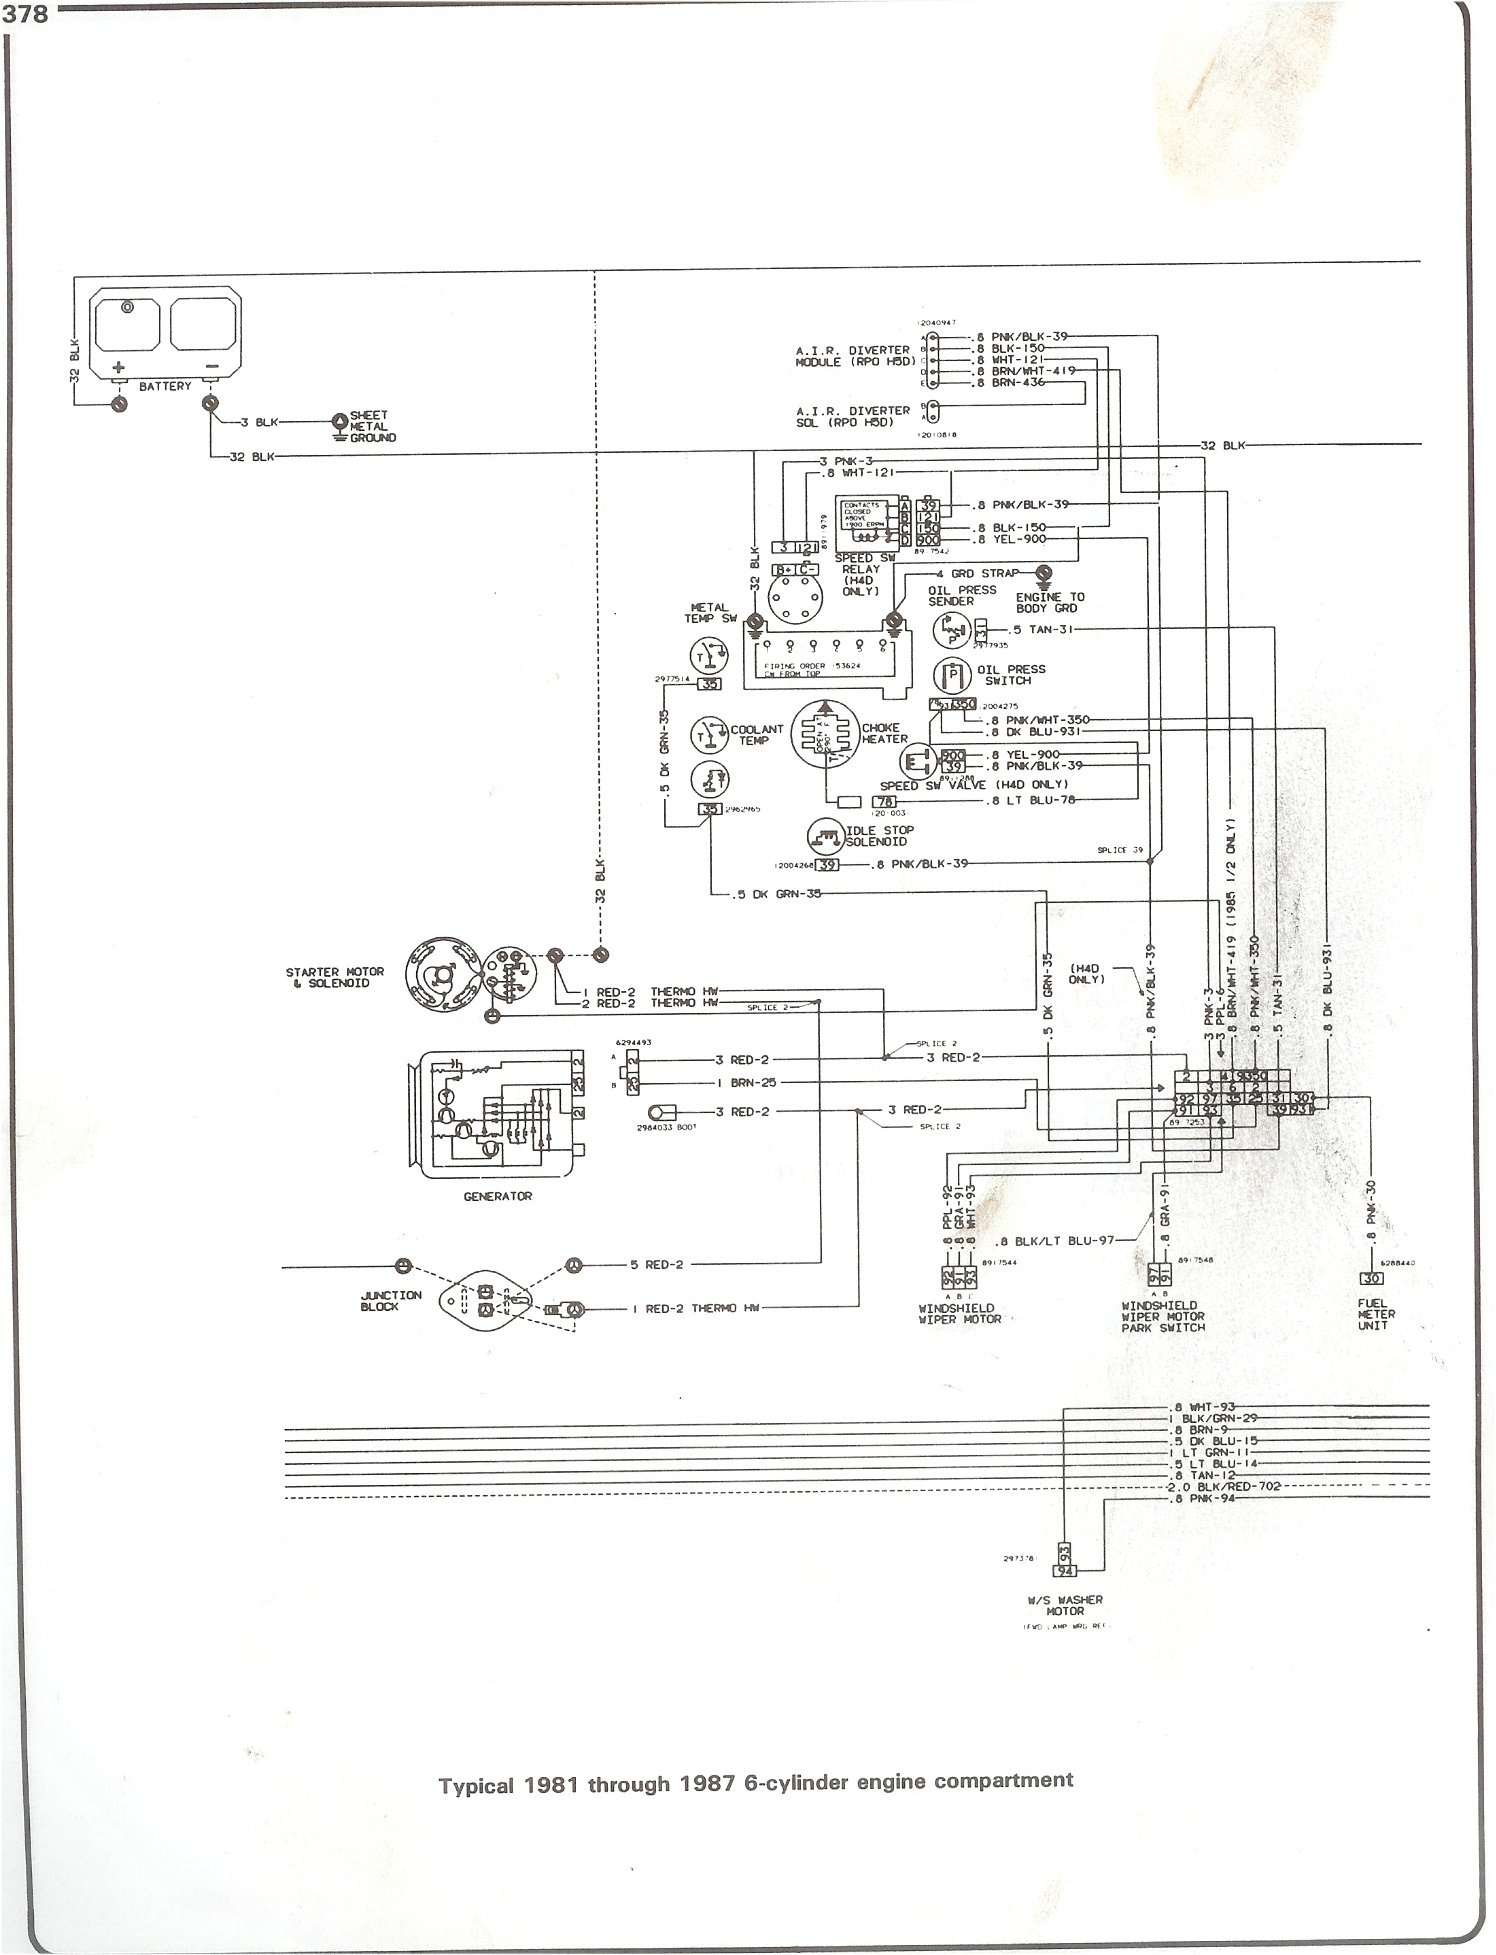 81 87_I6_engine complete 73 87 wiring diagrams 2008 Chevy Silverado Wiring Diagram at panicattacktreatment.co